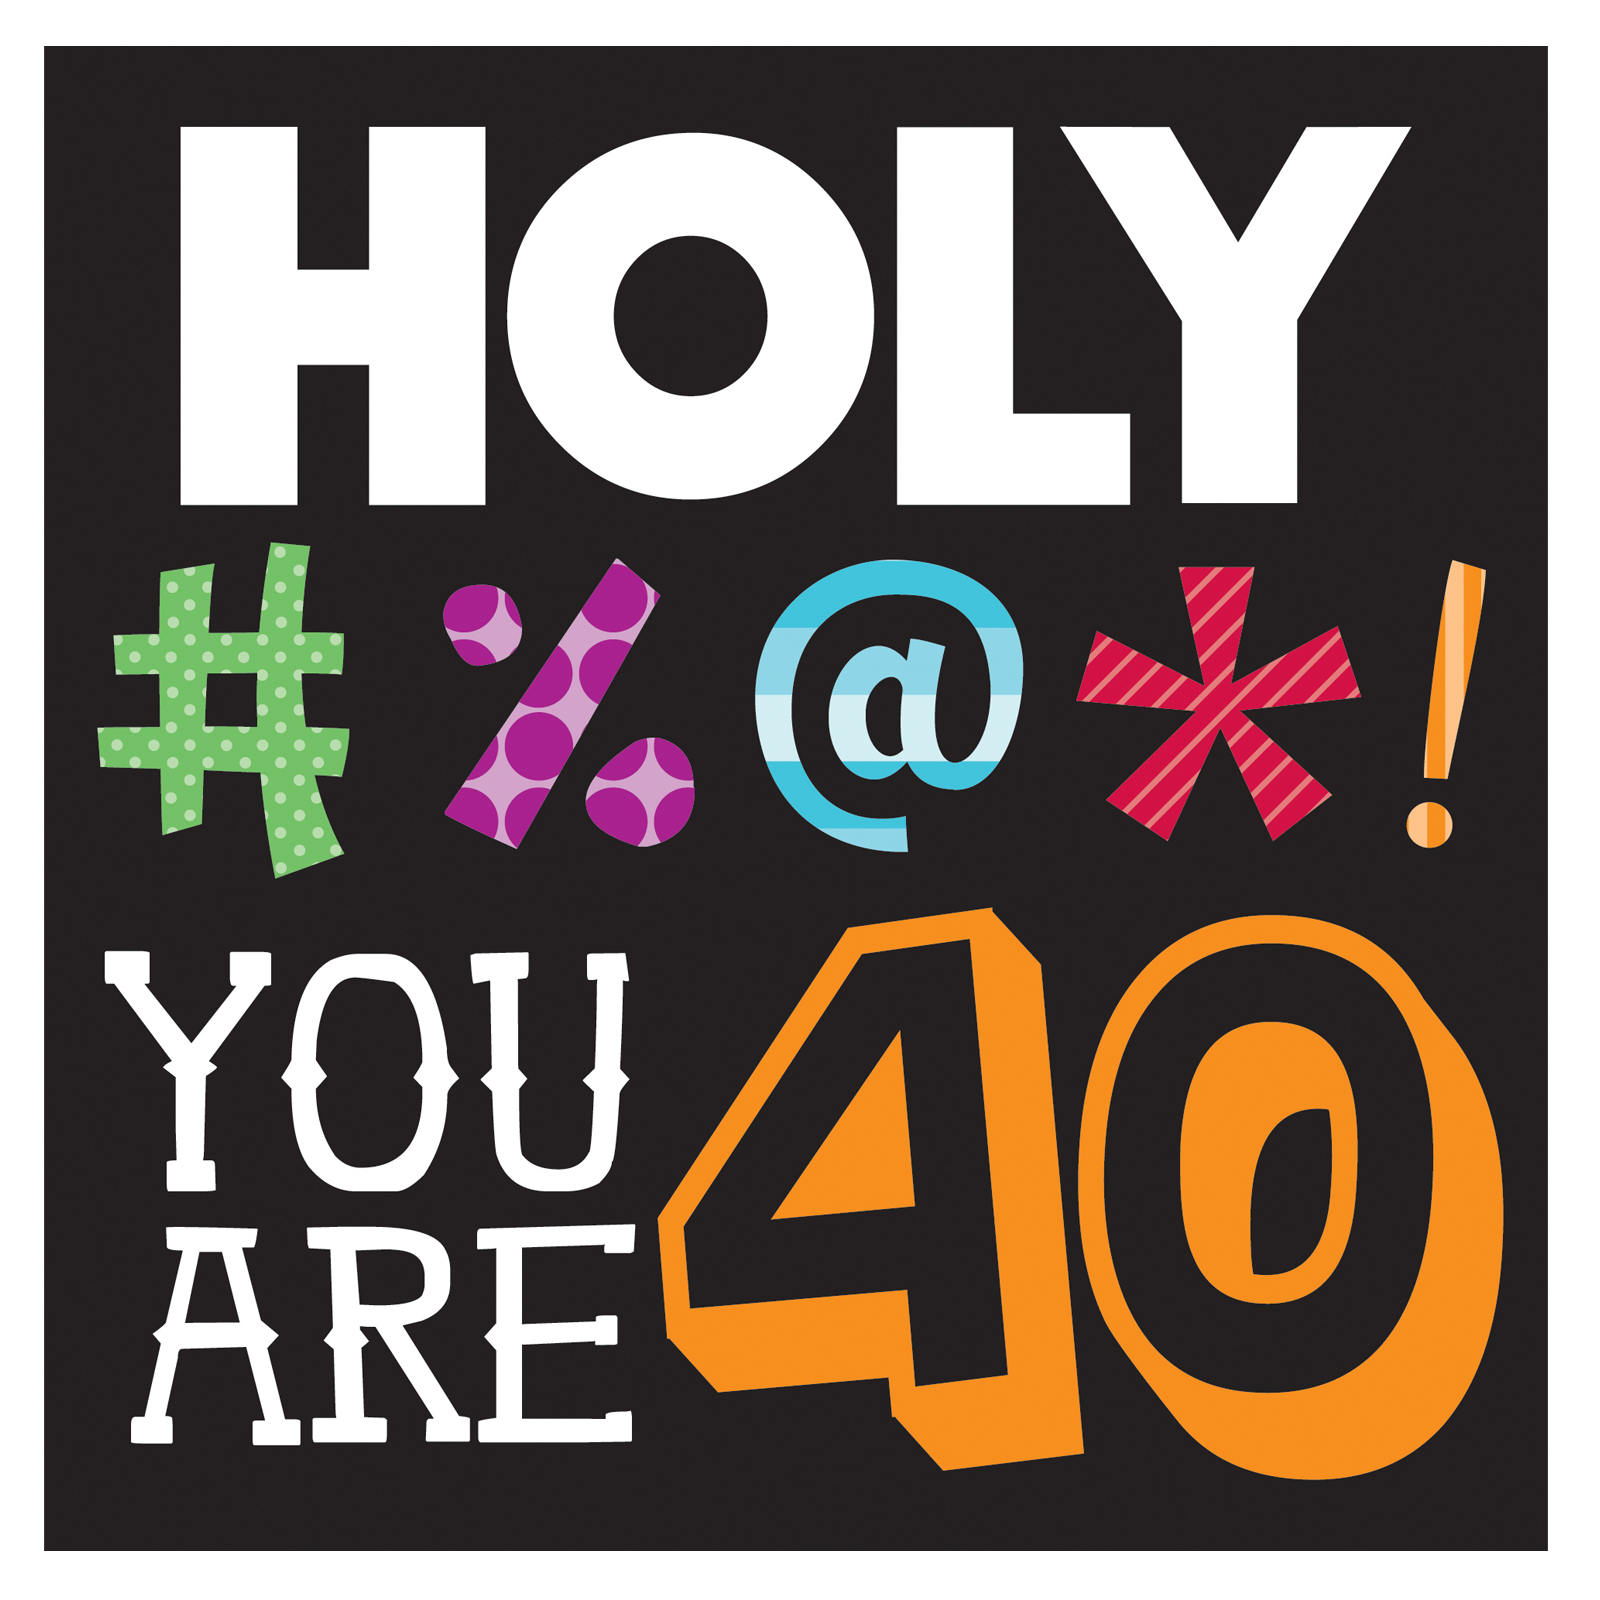 40th birthday clipart images pictures ; funny-40th-birthday-clipart-1